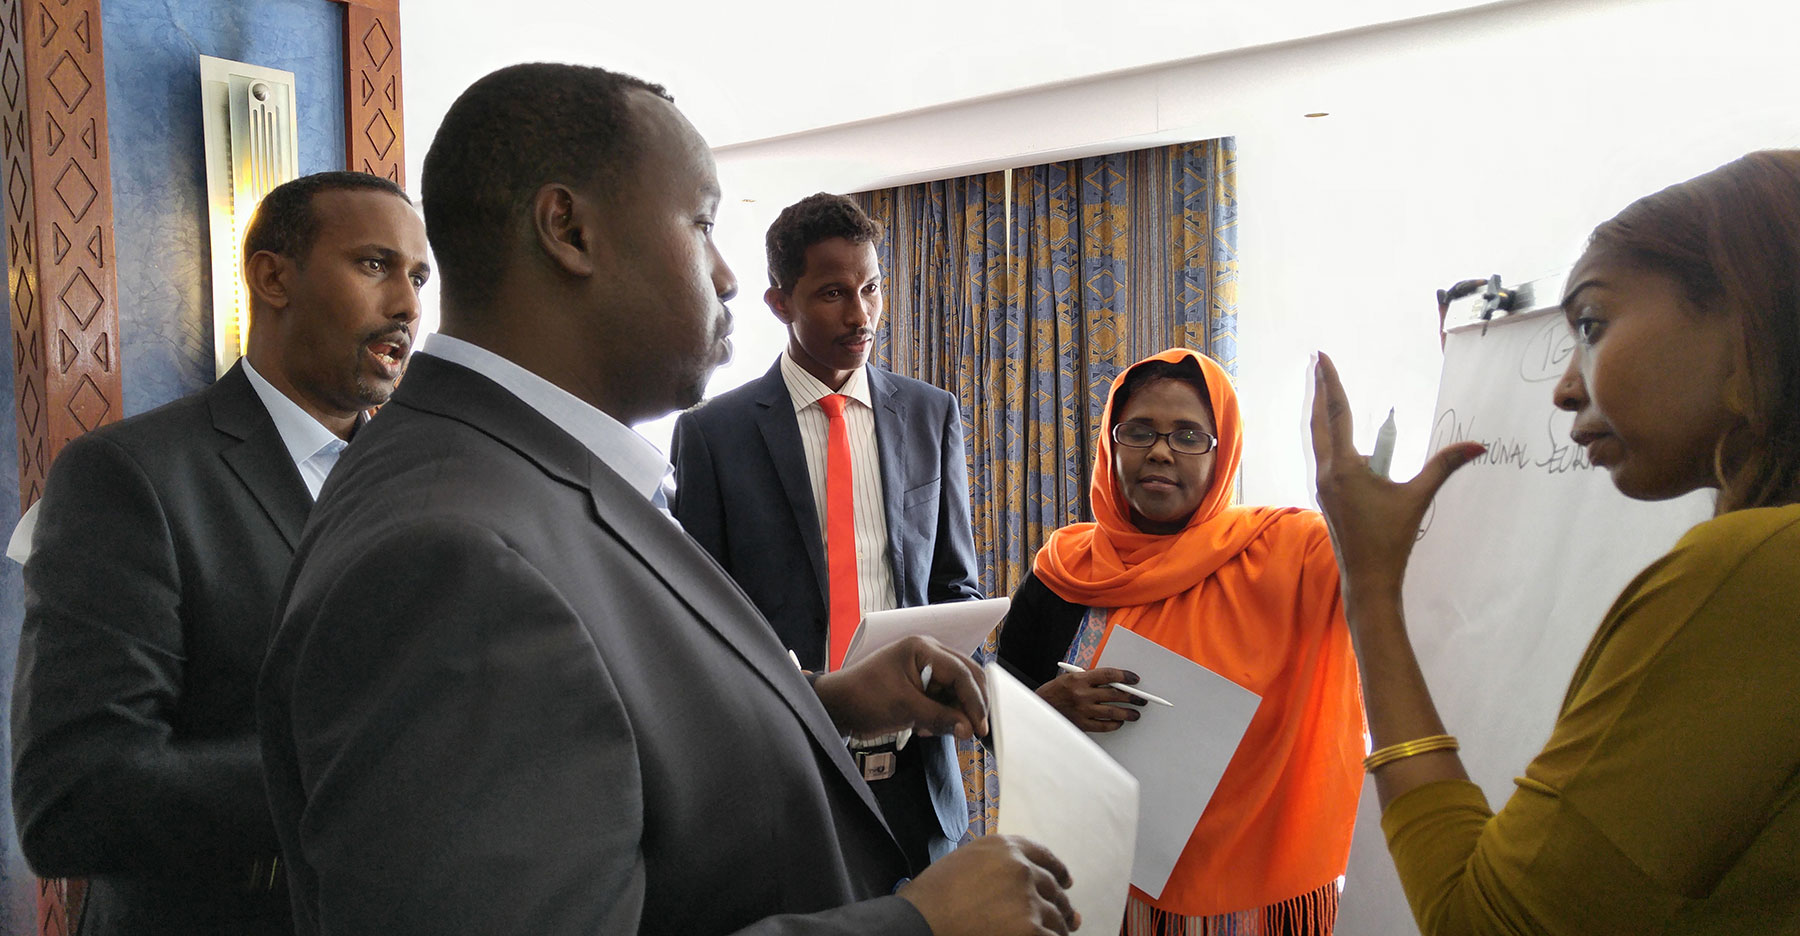 CDI are working with the Forum of Federations and the Somali Youth Development Network (SOYDEN)